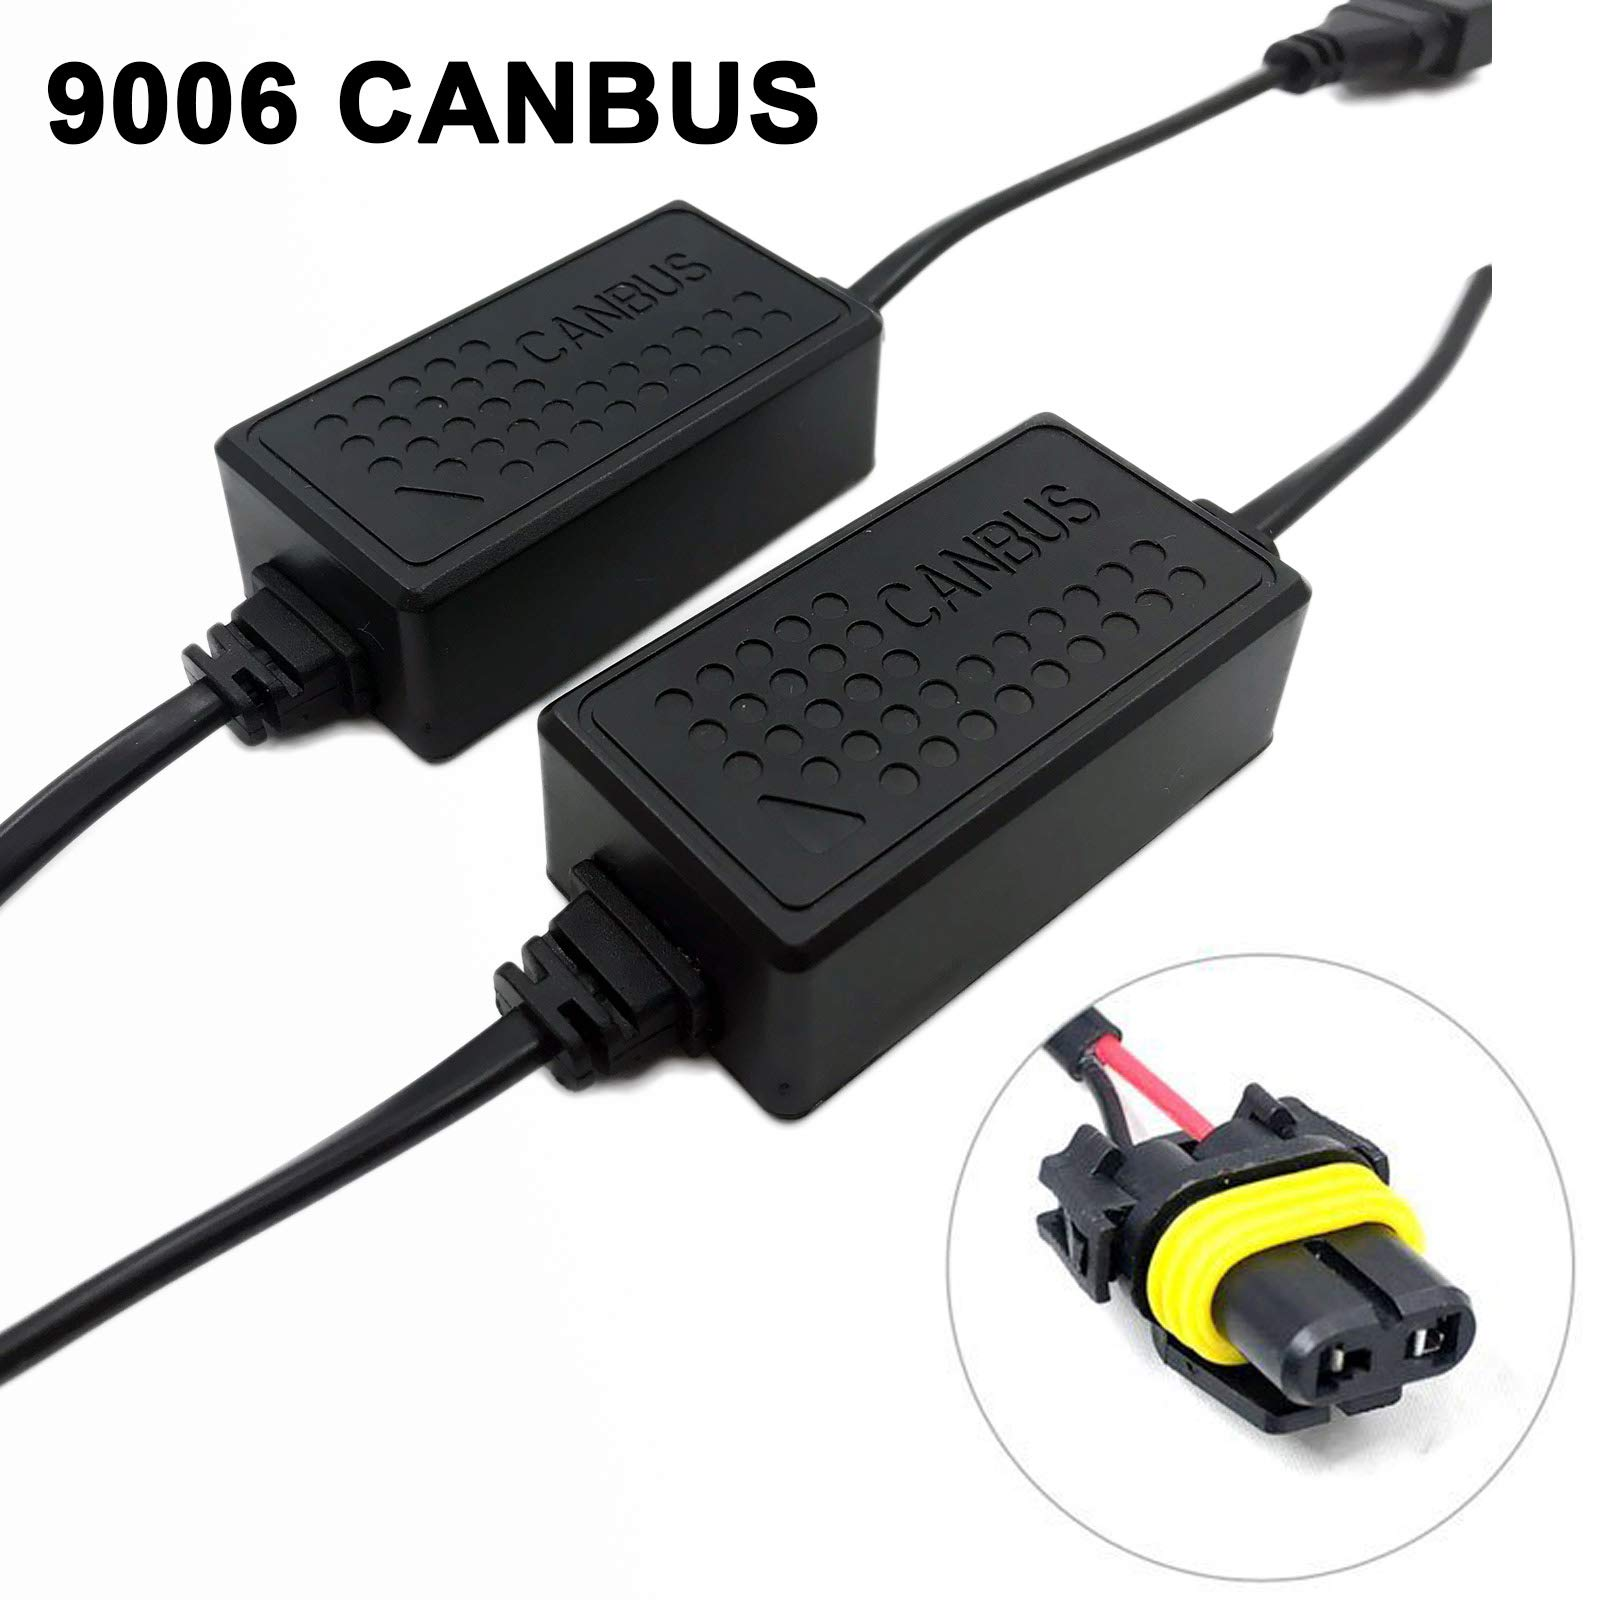 SOCAL-LED 2x A10 HB4 9006 EMC Headlight Kit CANBUS HID LED Decoder Anti-Flicker Error Canceller Relay Resistor Adapter